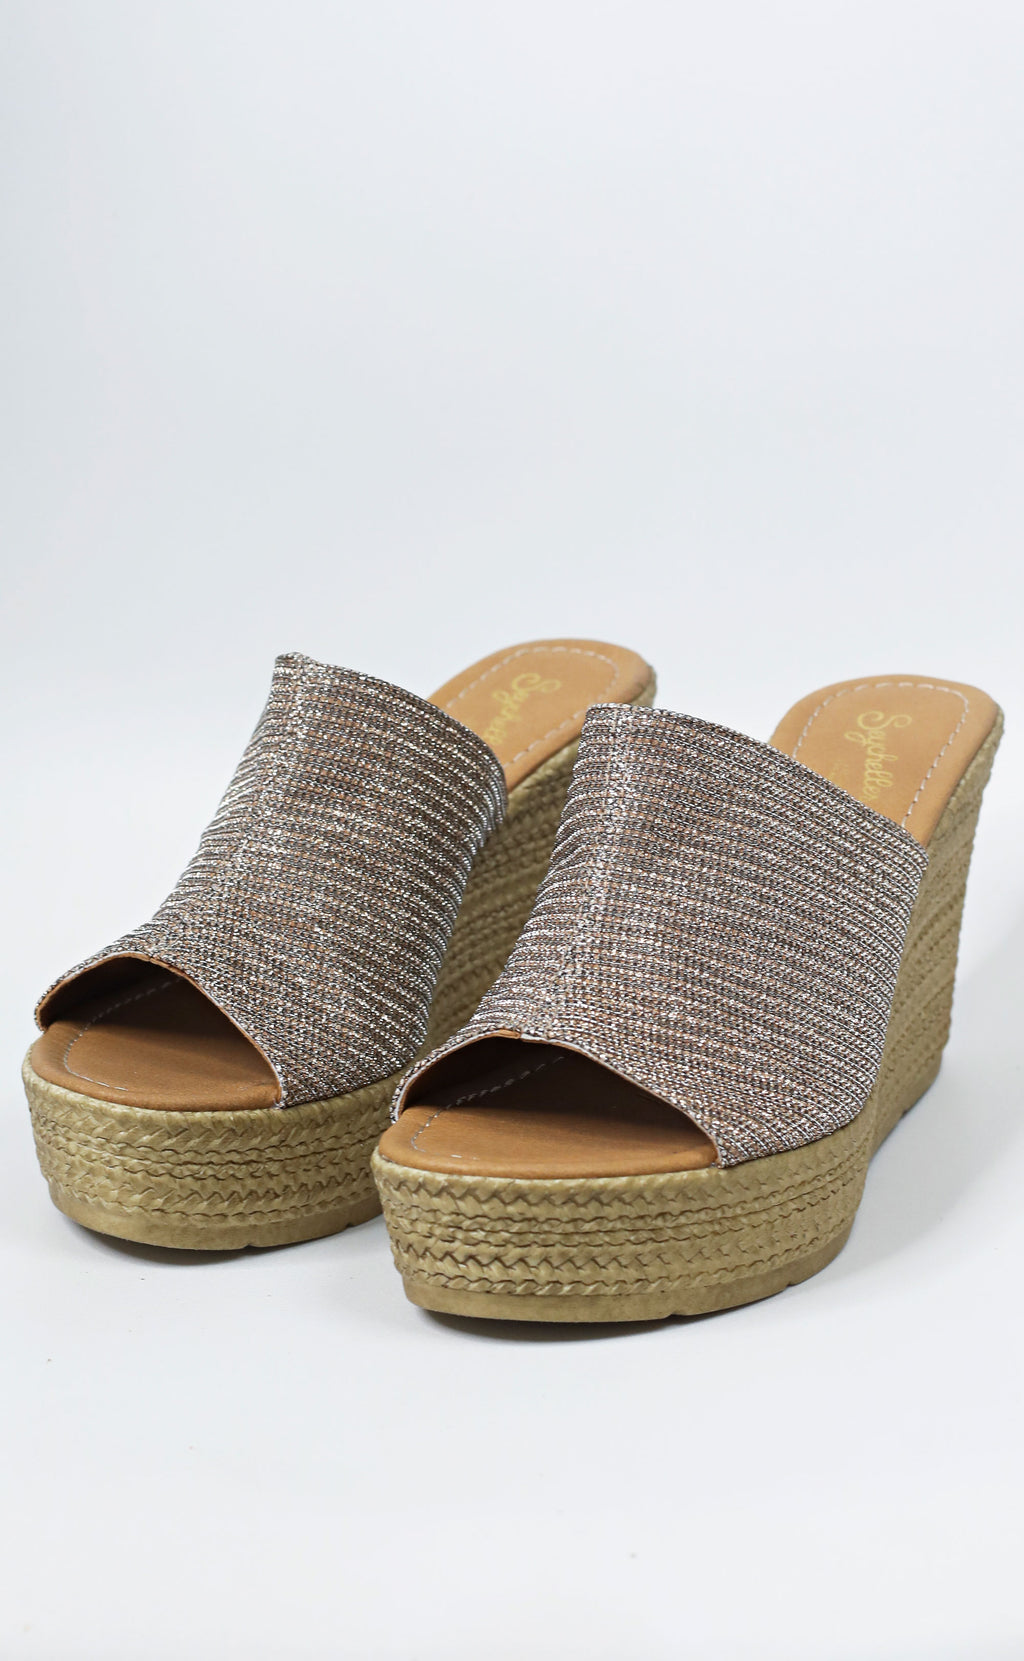 seychelles: spa metallic wedge